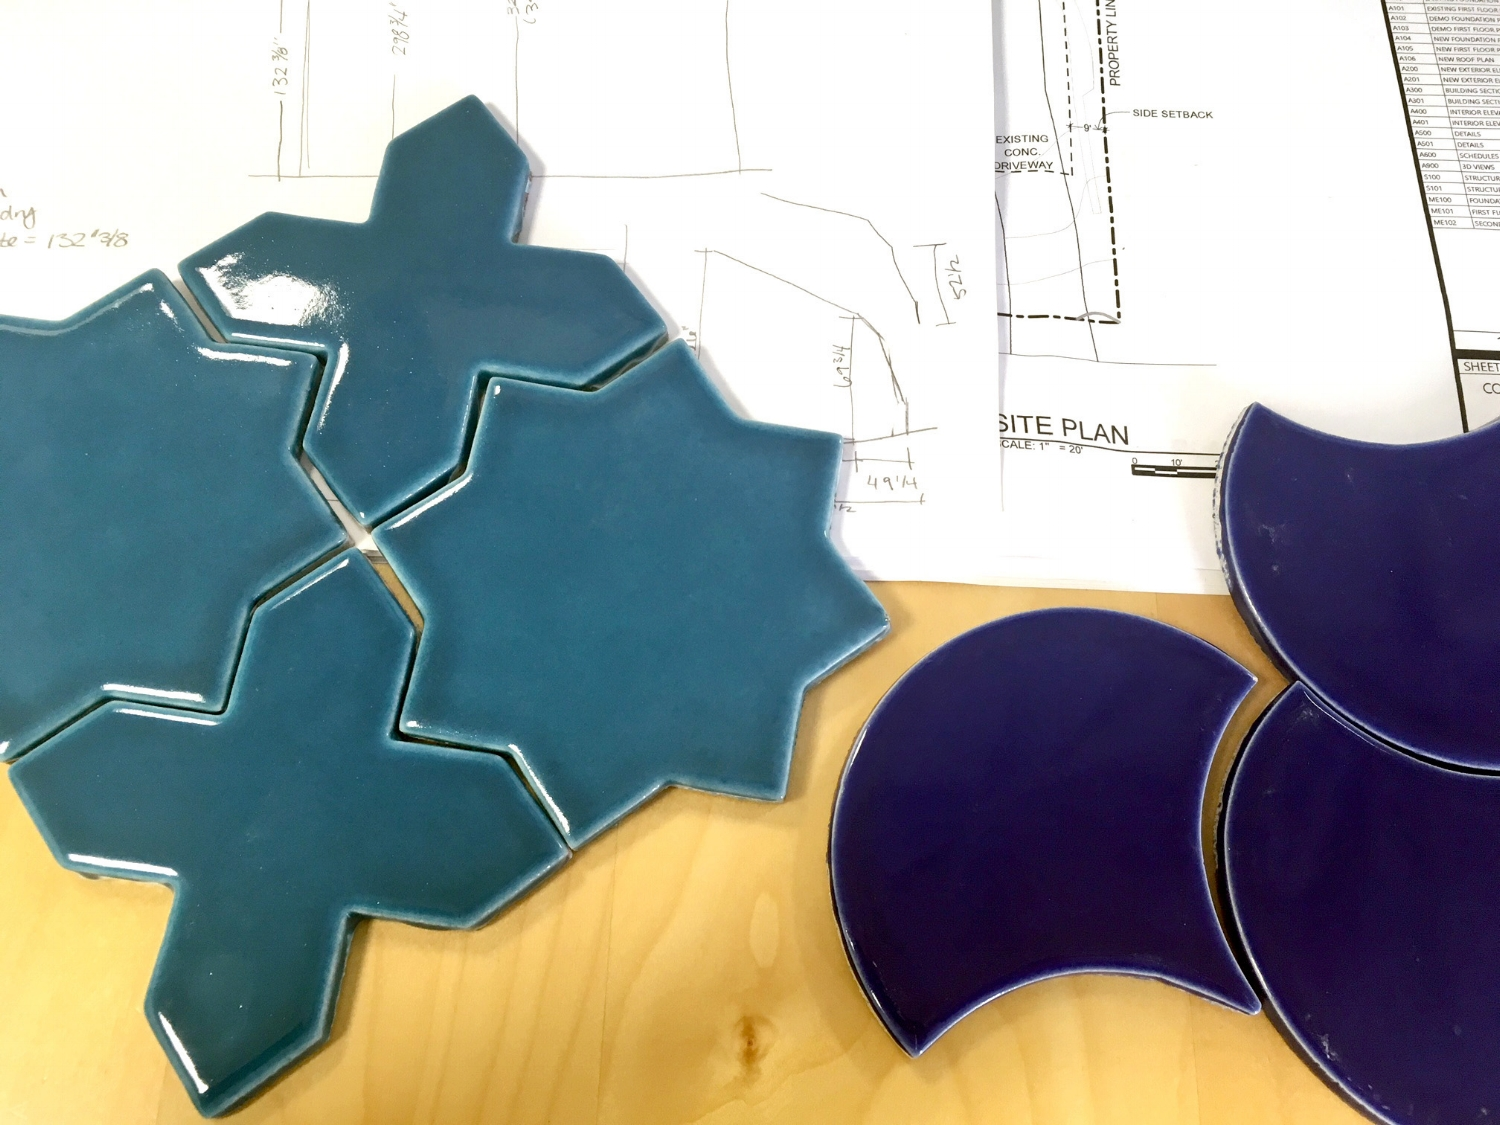 Fireclay Tile selections for the whole house remodel